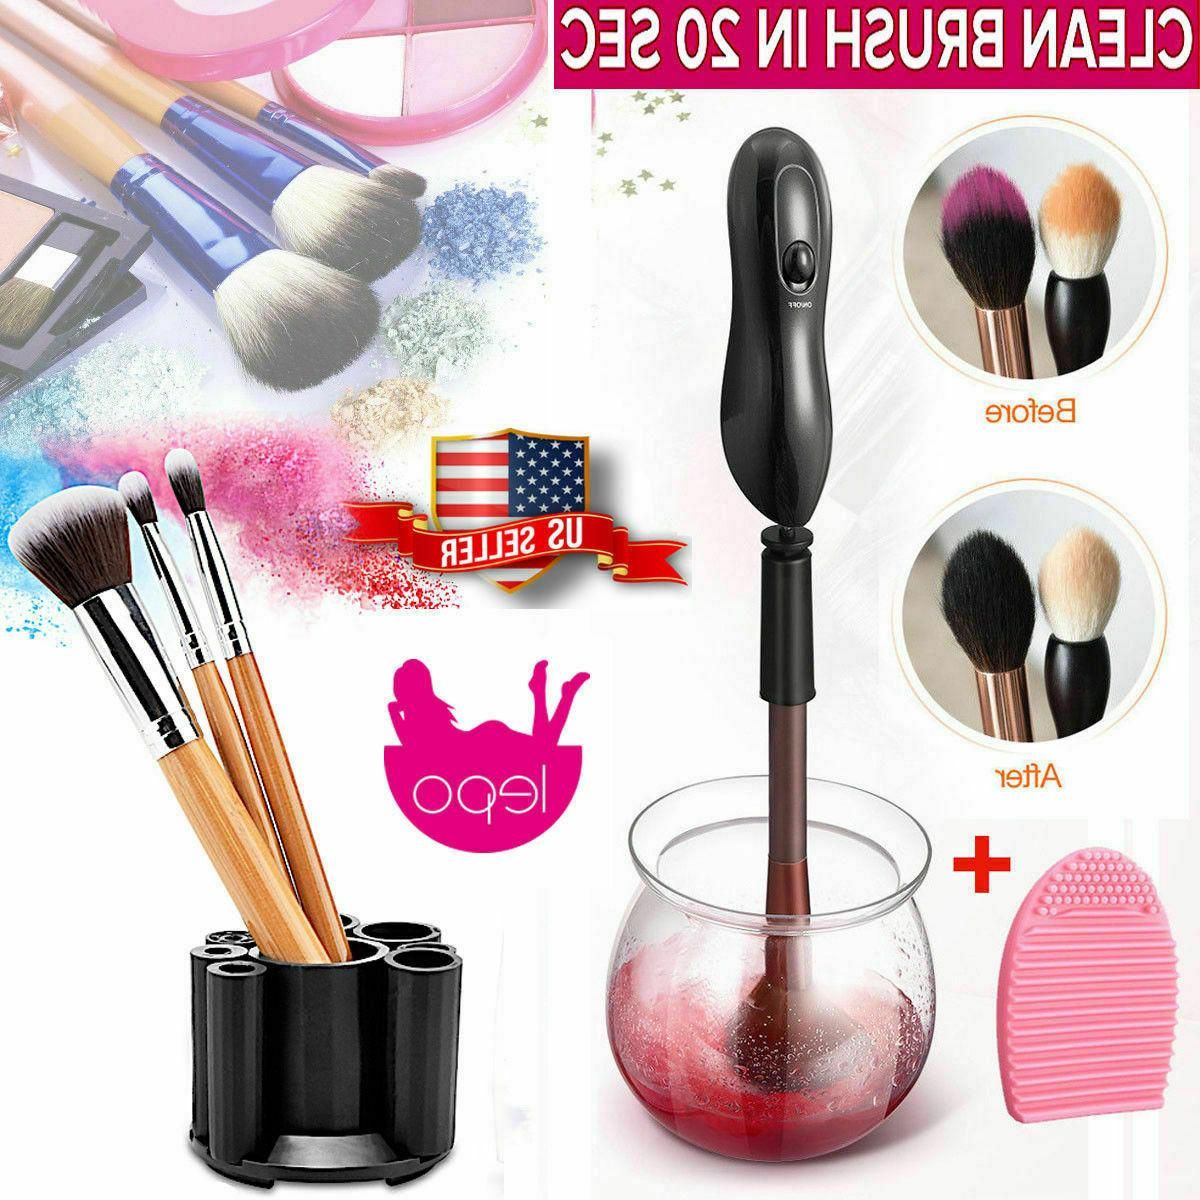 professional electric cosmetic makeup brush cleaner dryer